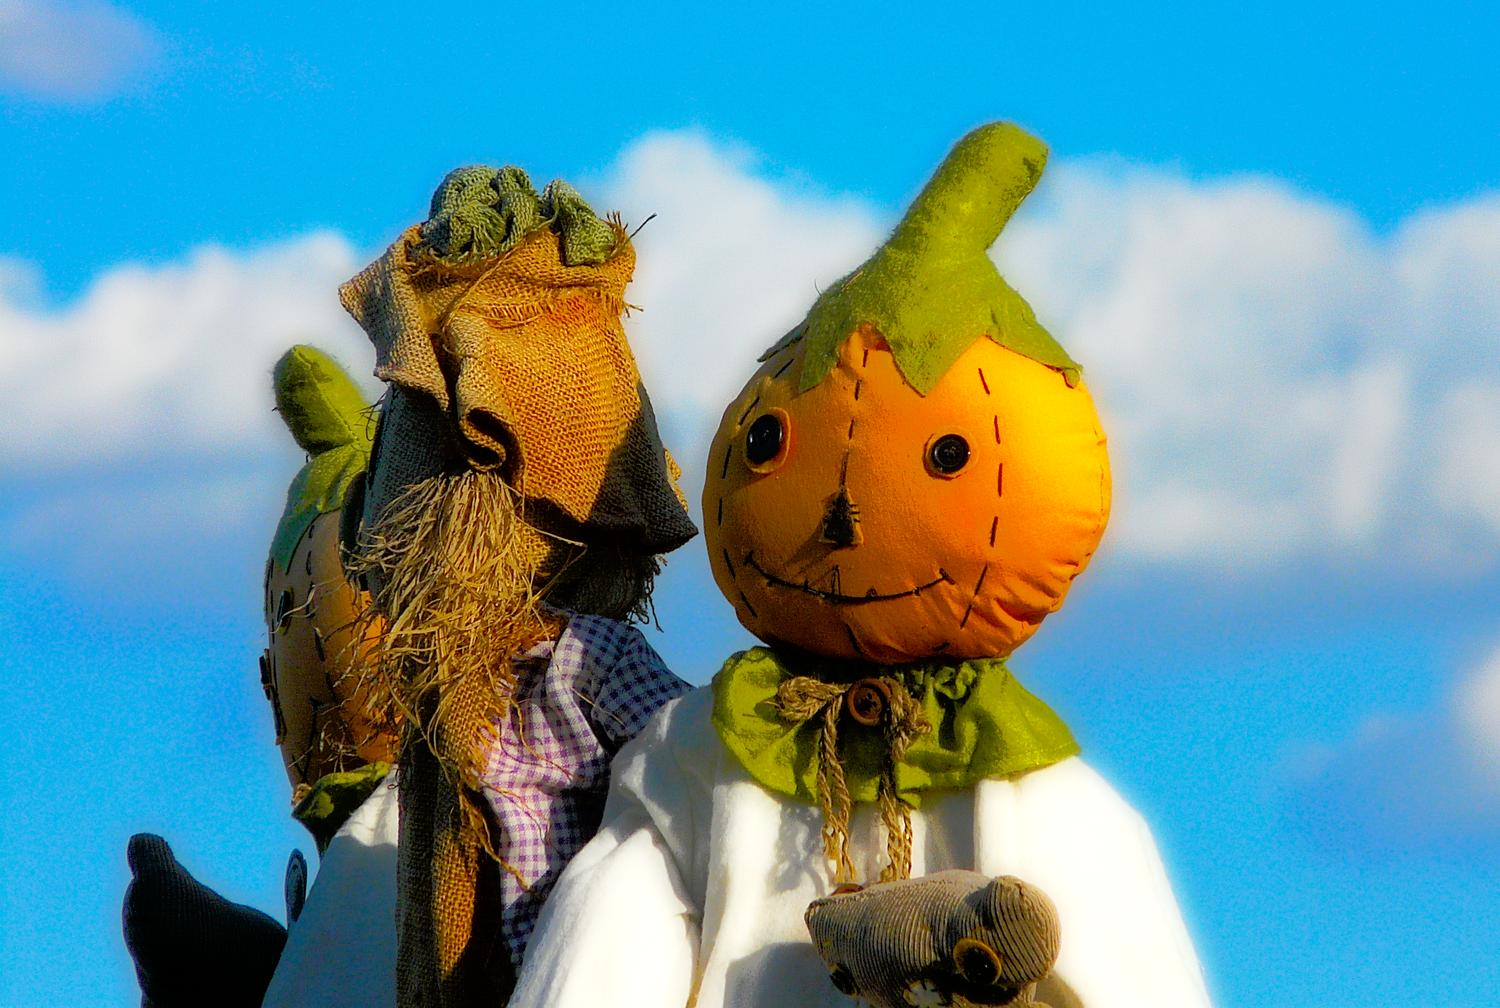 fantastical shot of a pumpkin scarecrow, with friends, like something from The Wizard of OZ - Mr. Pumpkin's fantasy - Panasonic DMC-FZ18 - Tony Karp, design, art, photography, techno-impressionist, techno-impressionism, aerial photography , drone , drones , dji , mavic pro , video , 3D printing - Books -